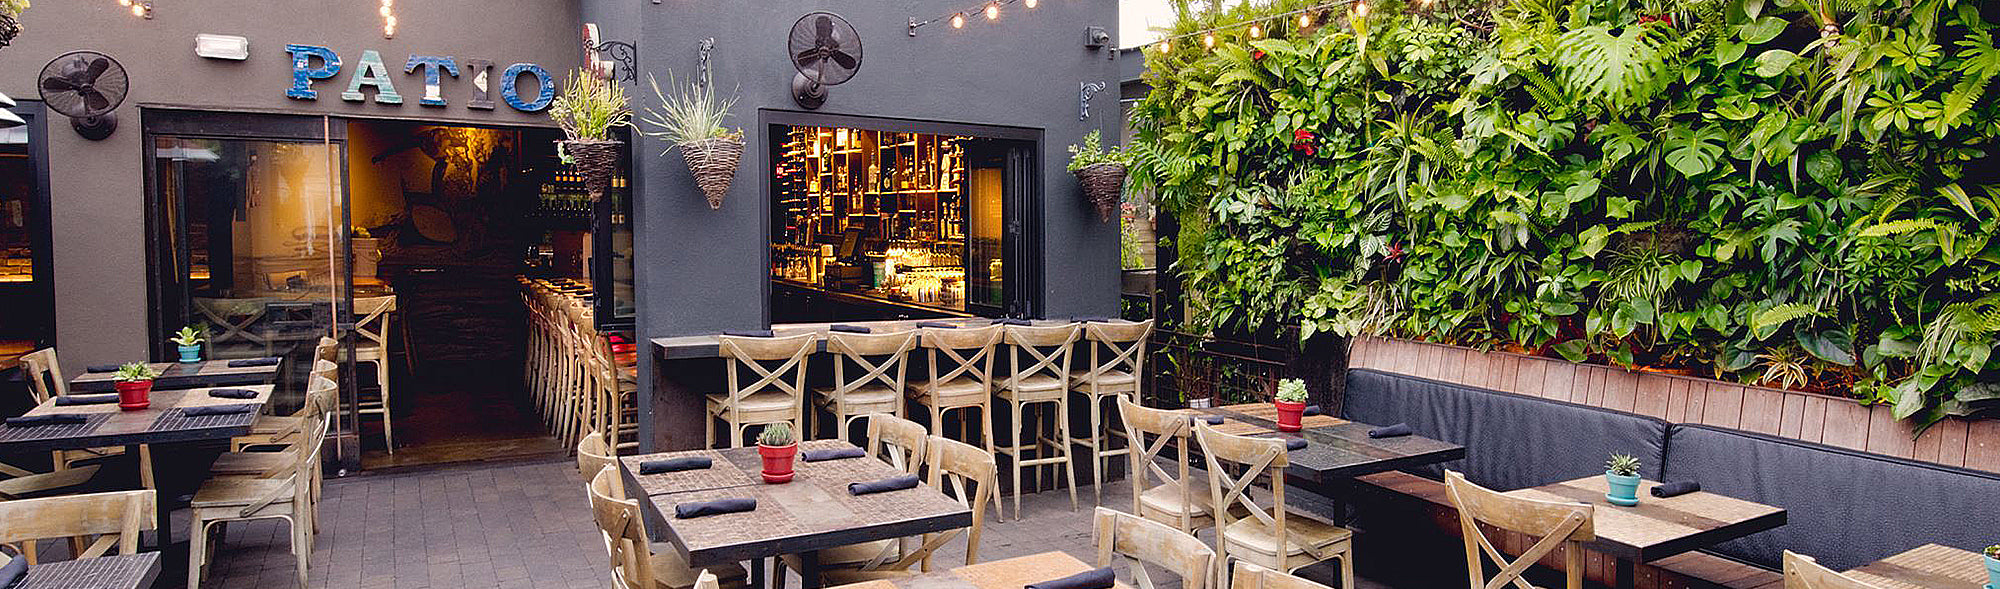 The Best Best Restaurants in San Diego With Outdoor Seating